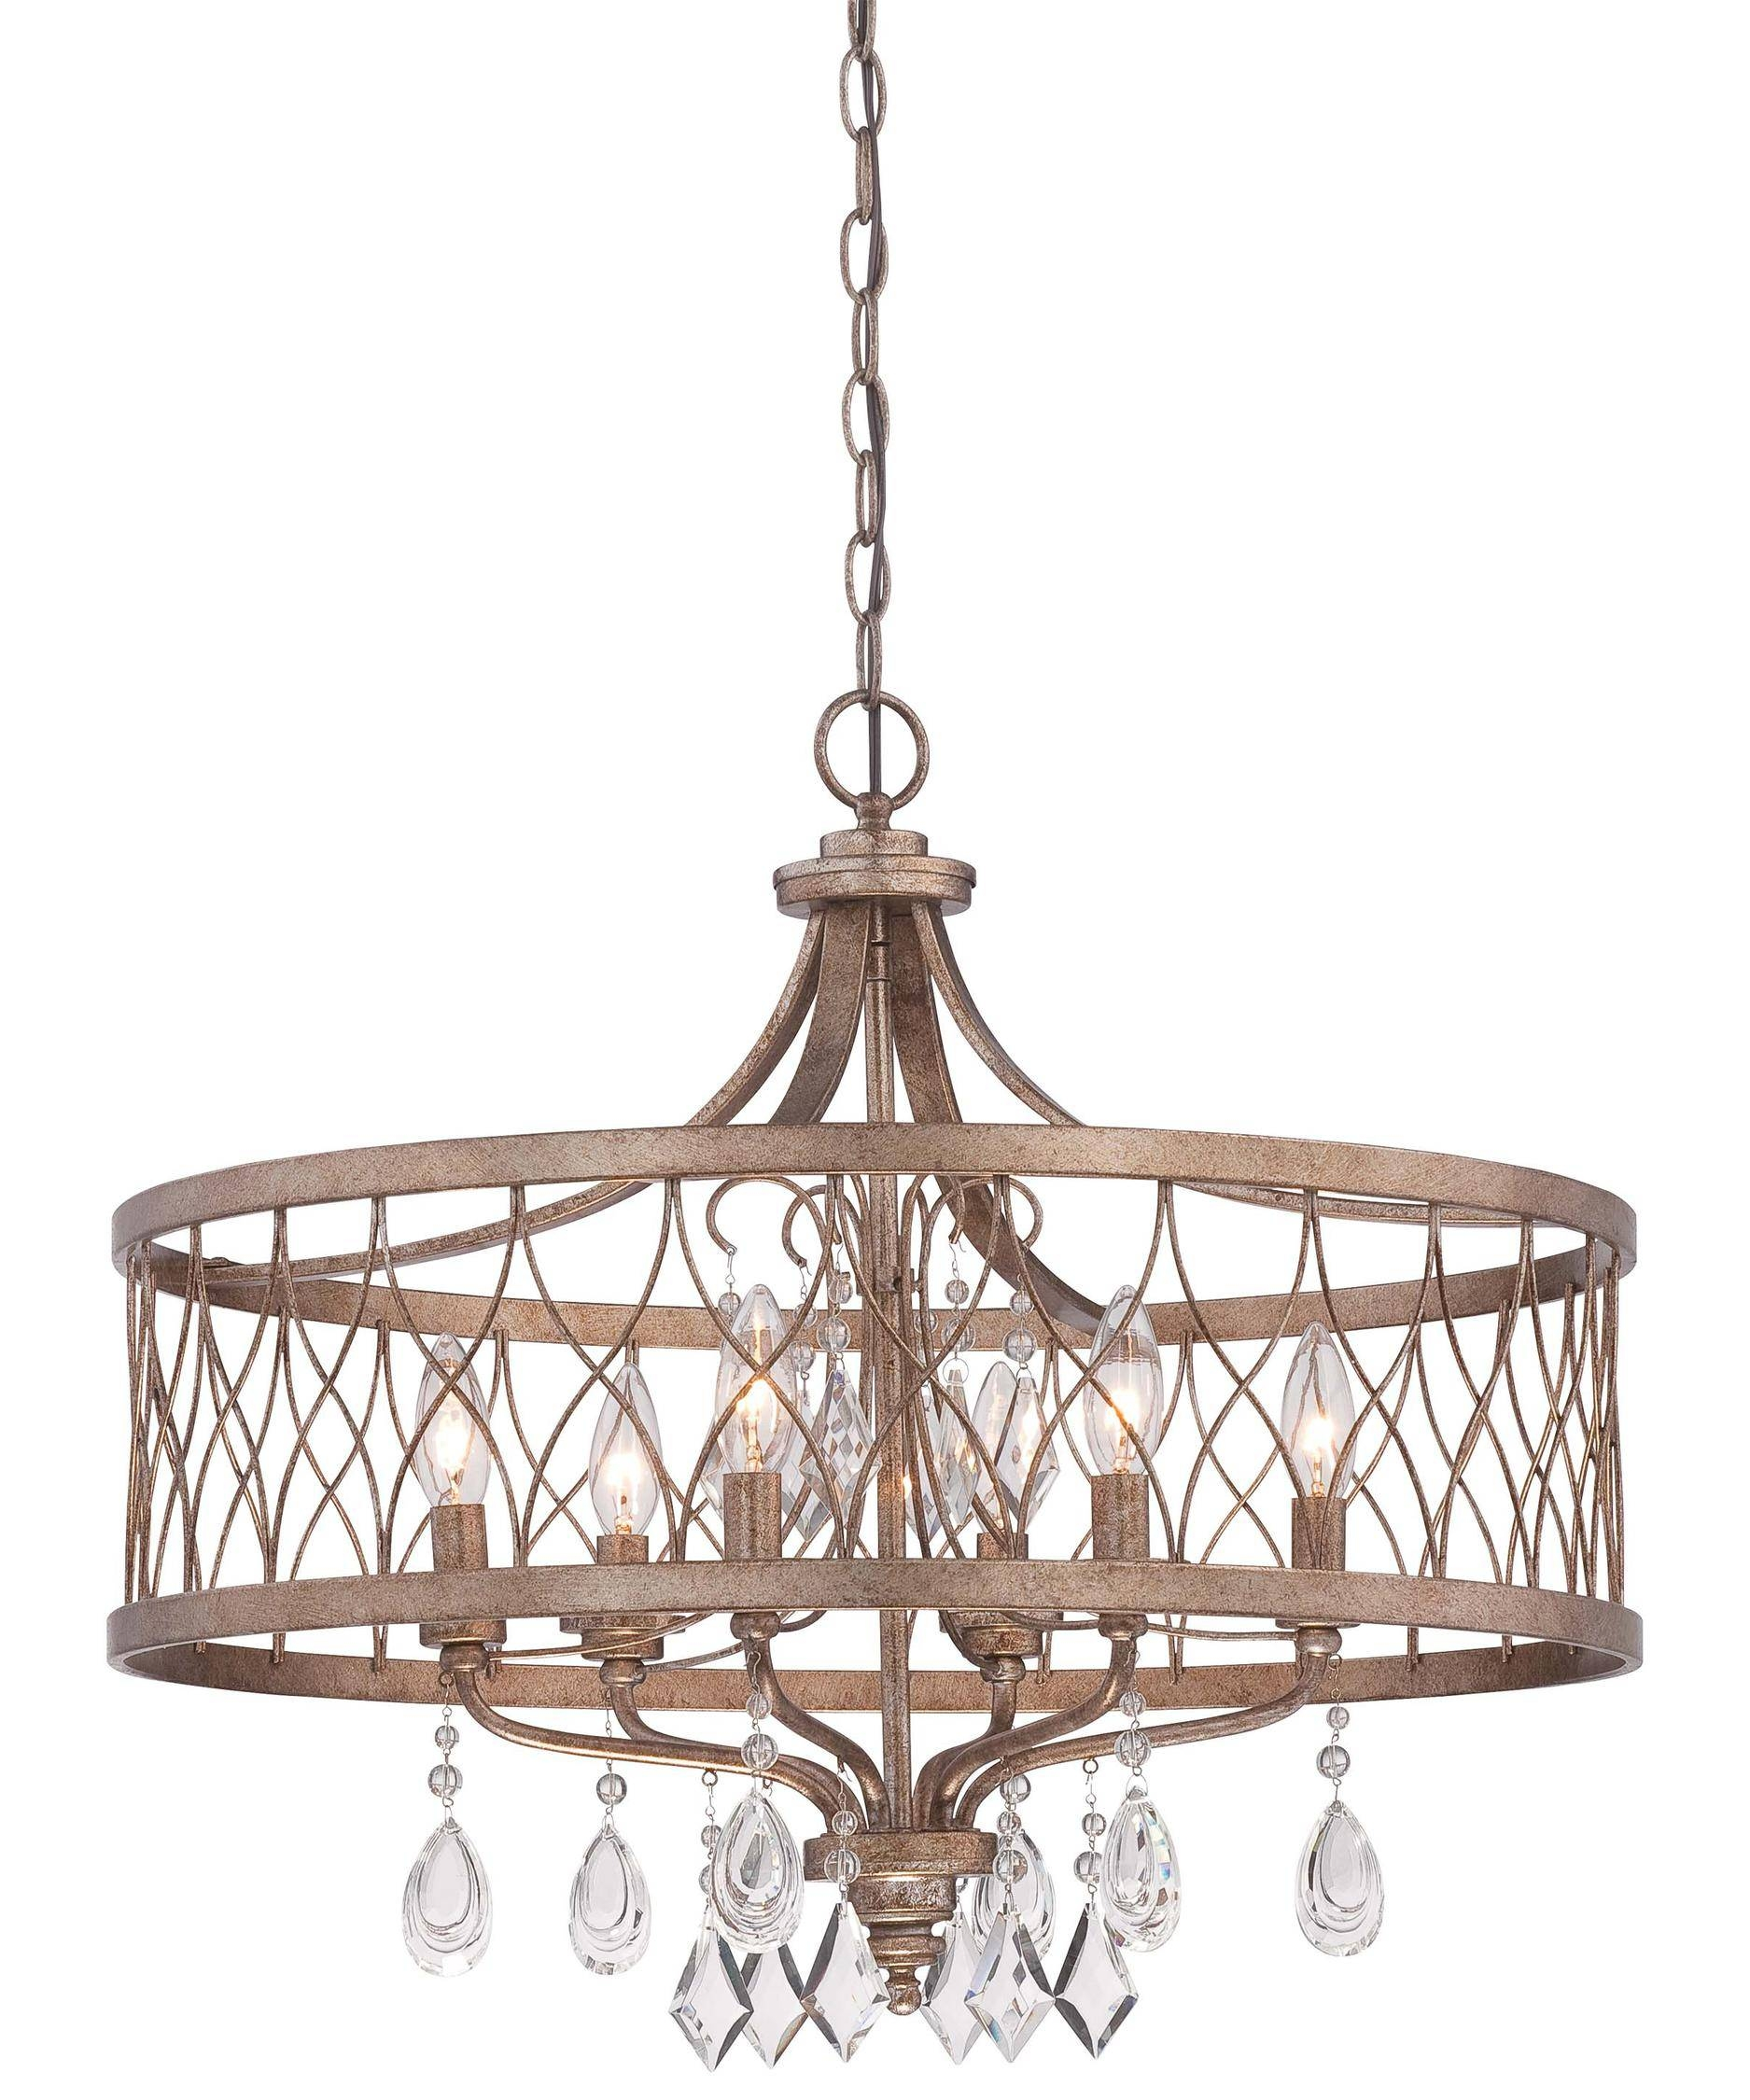 Minka Lavery 4406 West Liberty 24 Inch Wide 6 Light Large Pendant intended for Minka Lavery Pendant Lights (Image 4 of 15)